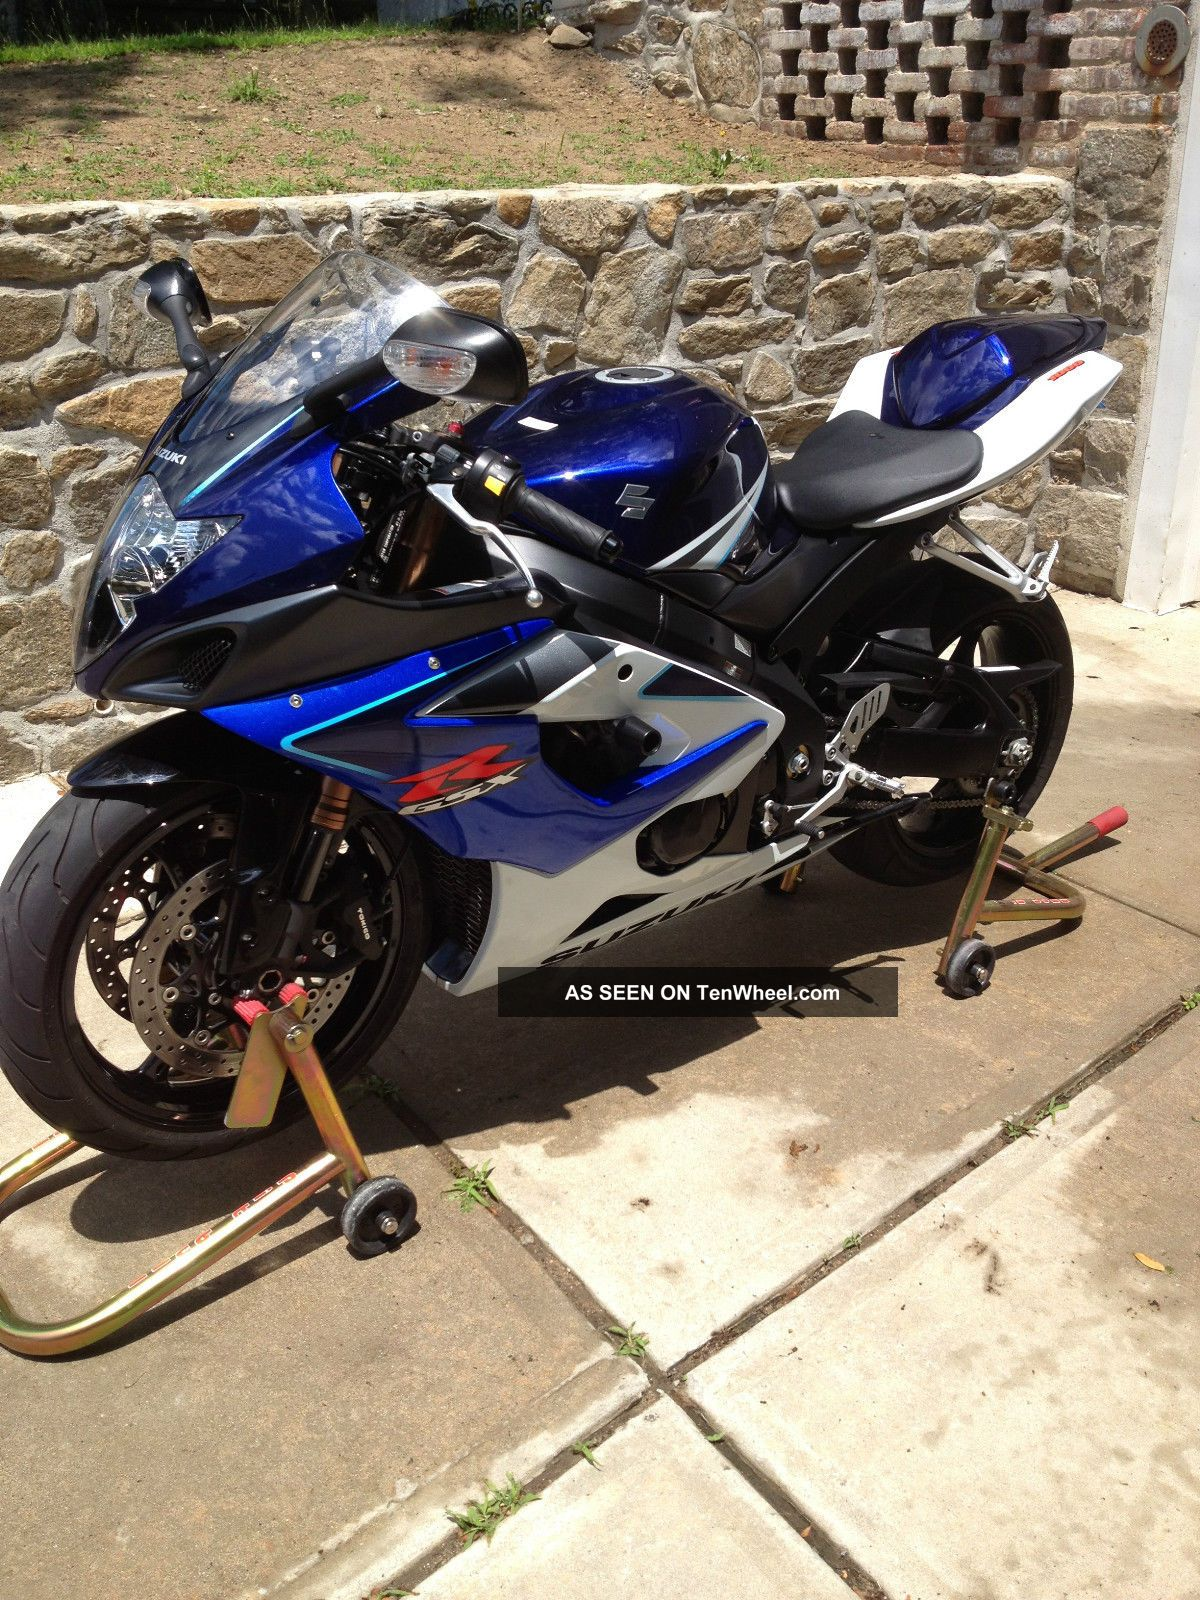 2006 suzuki gsxr 1000. Black Bedroom Furniture Sets. Home Design Ideas